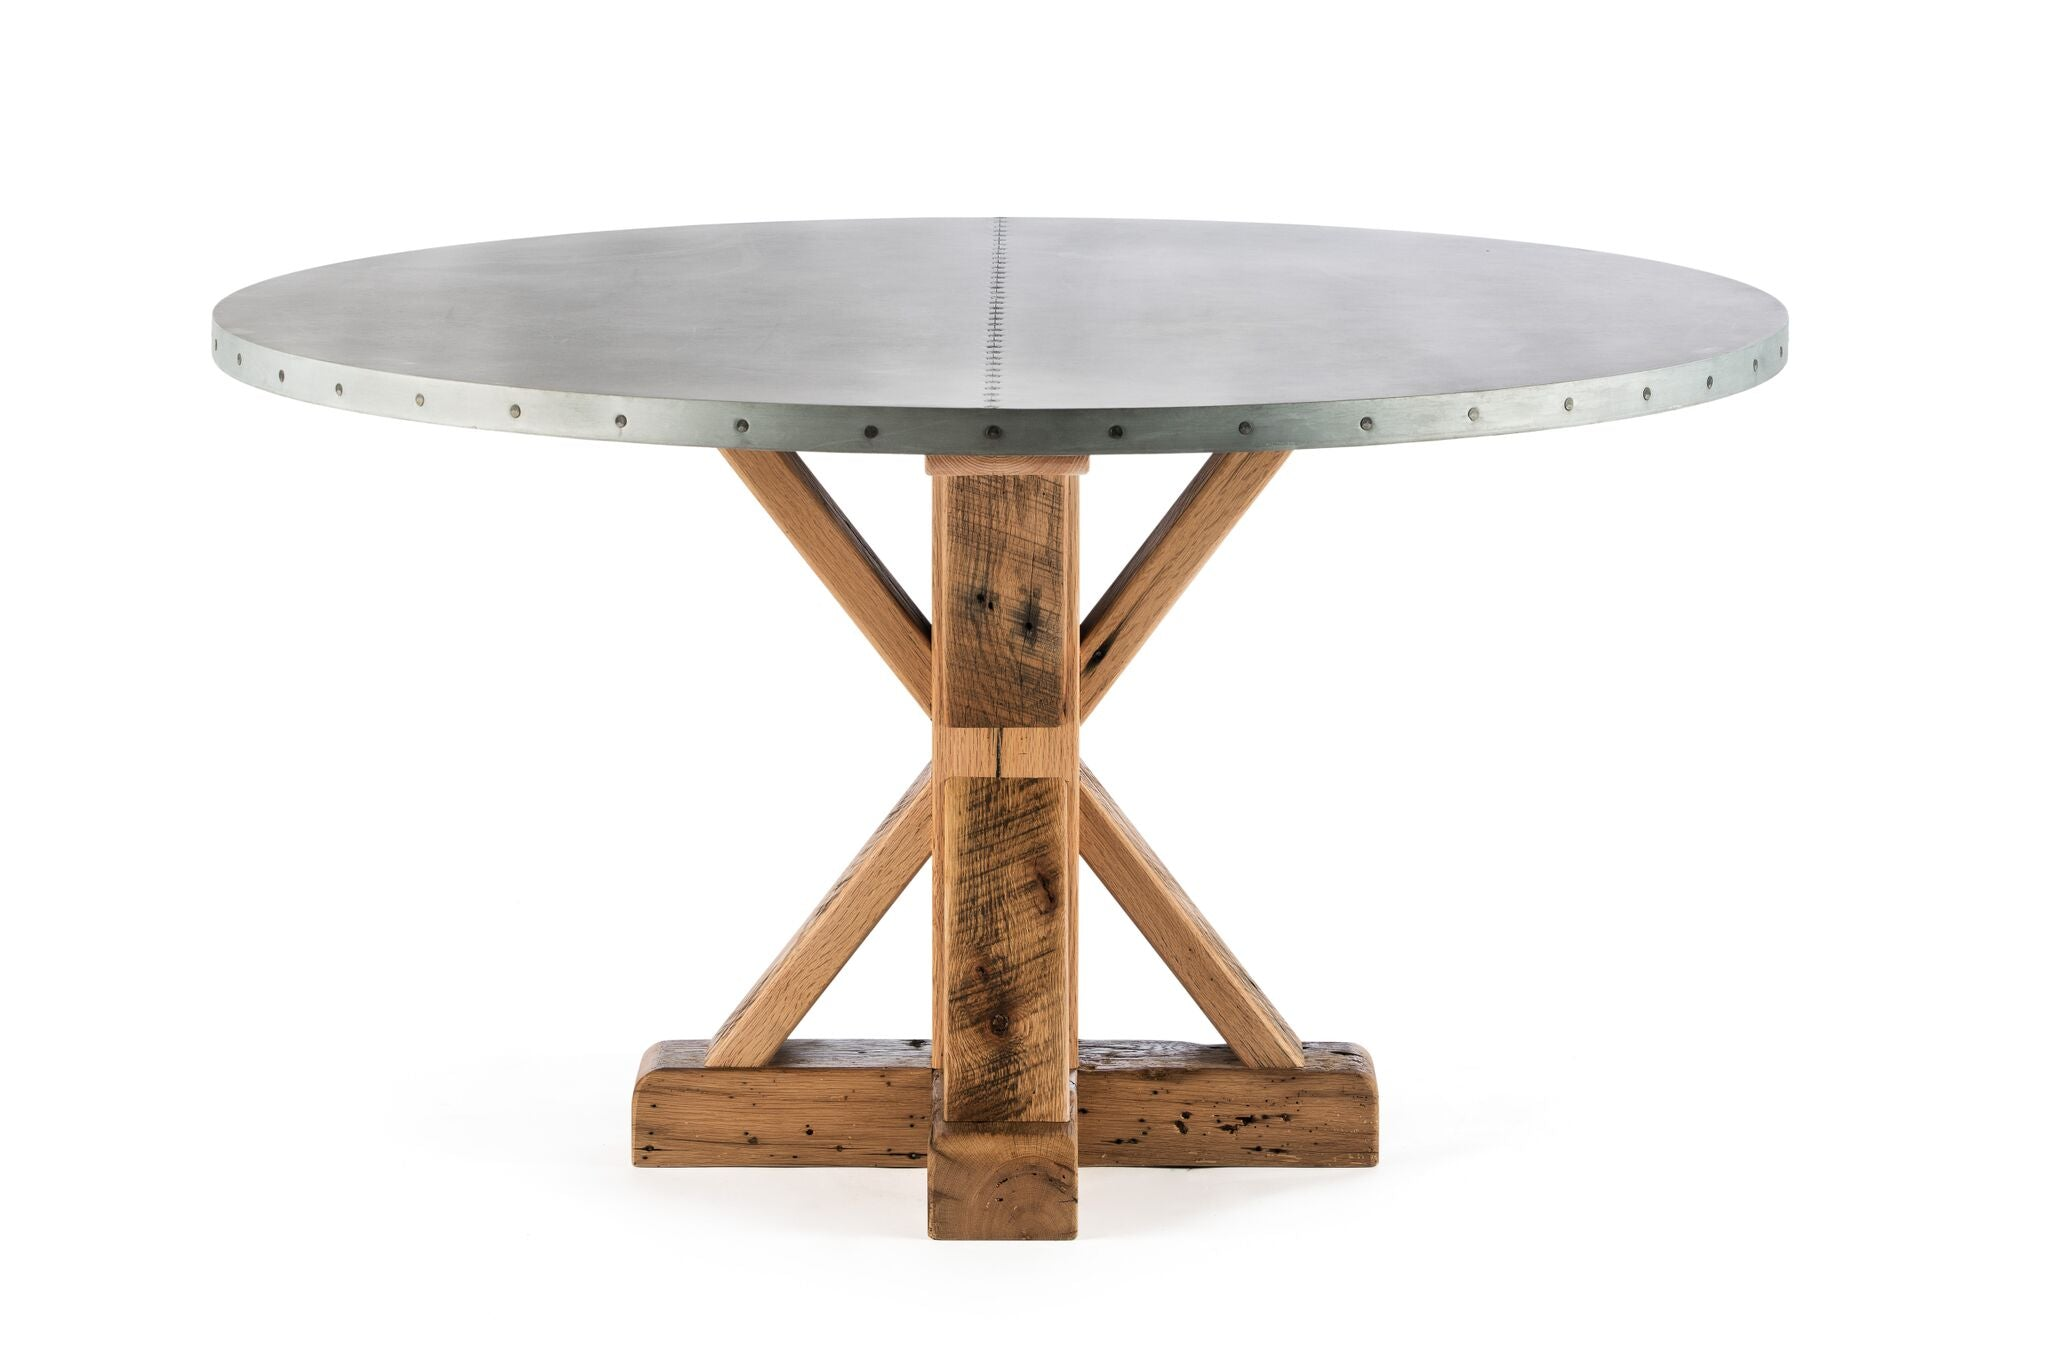 "Zinc Round Tables | French Trestle Table | CLASSIC | White Wash on Reclaimed Oak | CUSTOM SIZE 42""D 29""H 